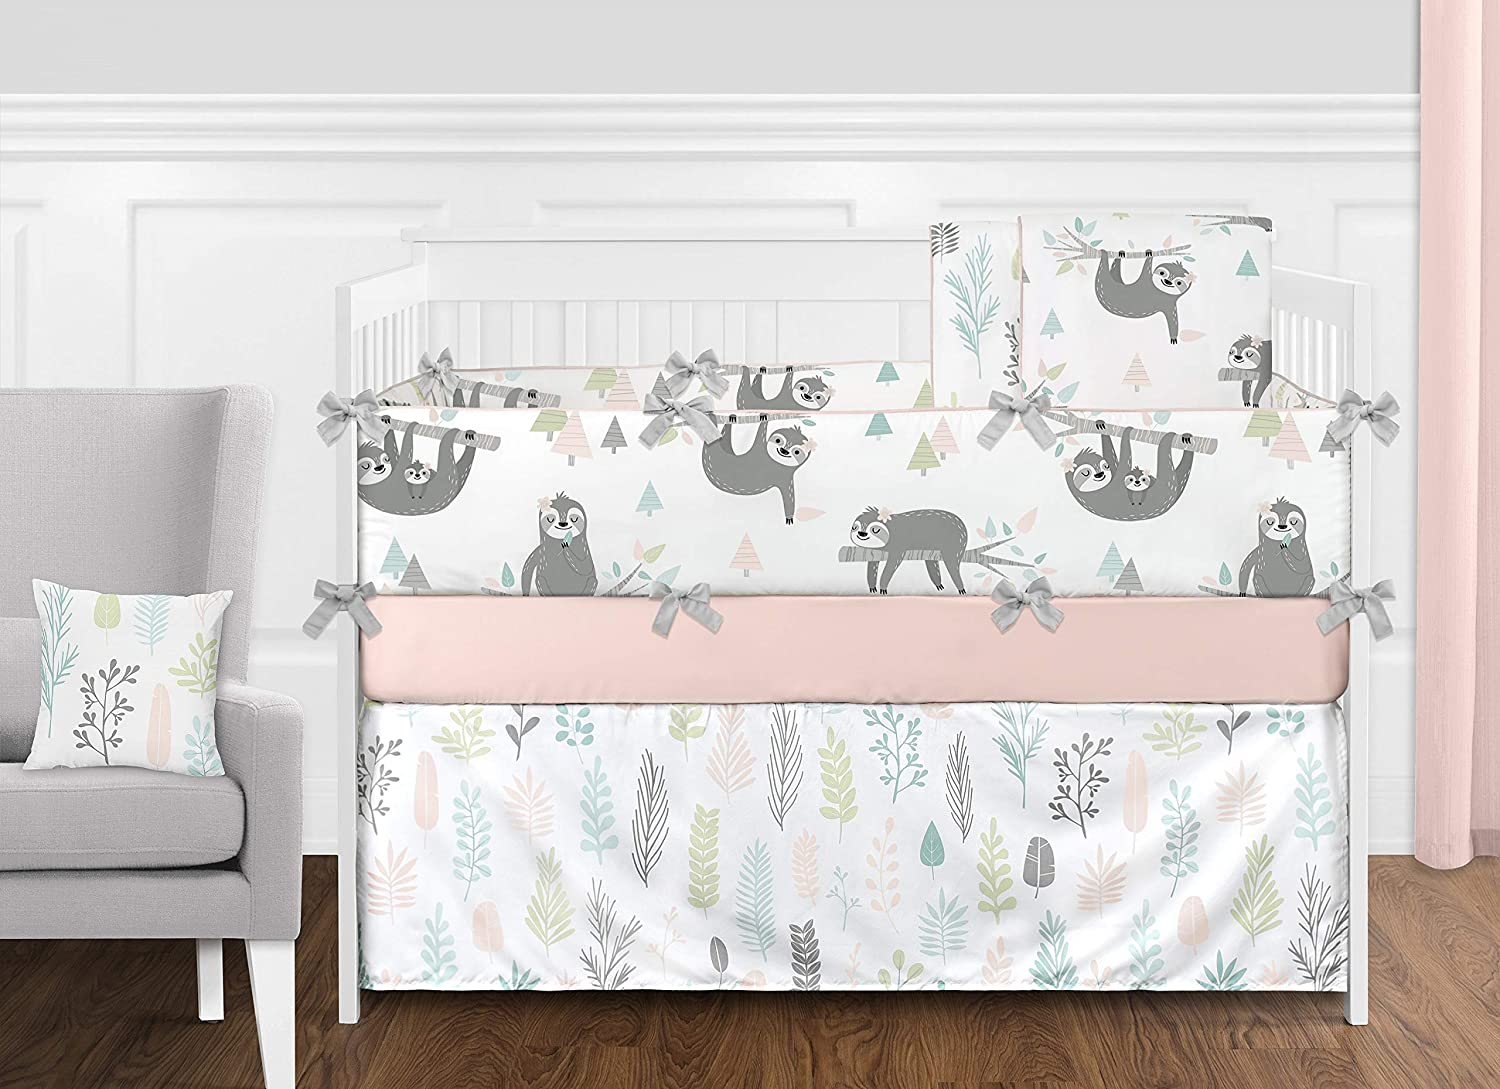 Sweet Jojo Designs Pink and Grey Jungle Sloth Leaf Baby Girl Nursery Crib Bedding Set with Bumper - 9 Pieces - Blush, Turquoise, Gray and Green Tropical Botanical Rainforest